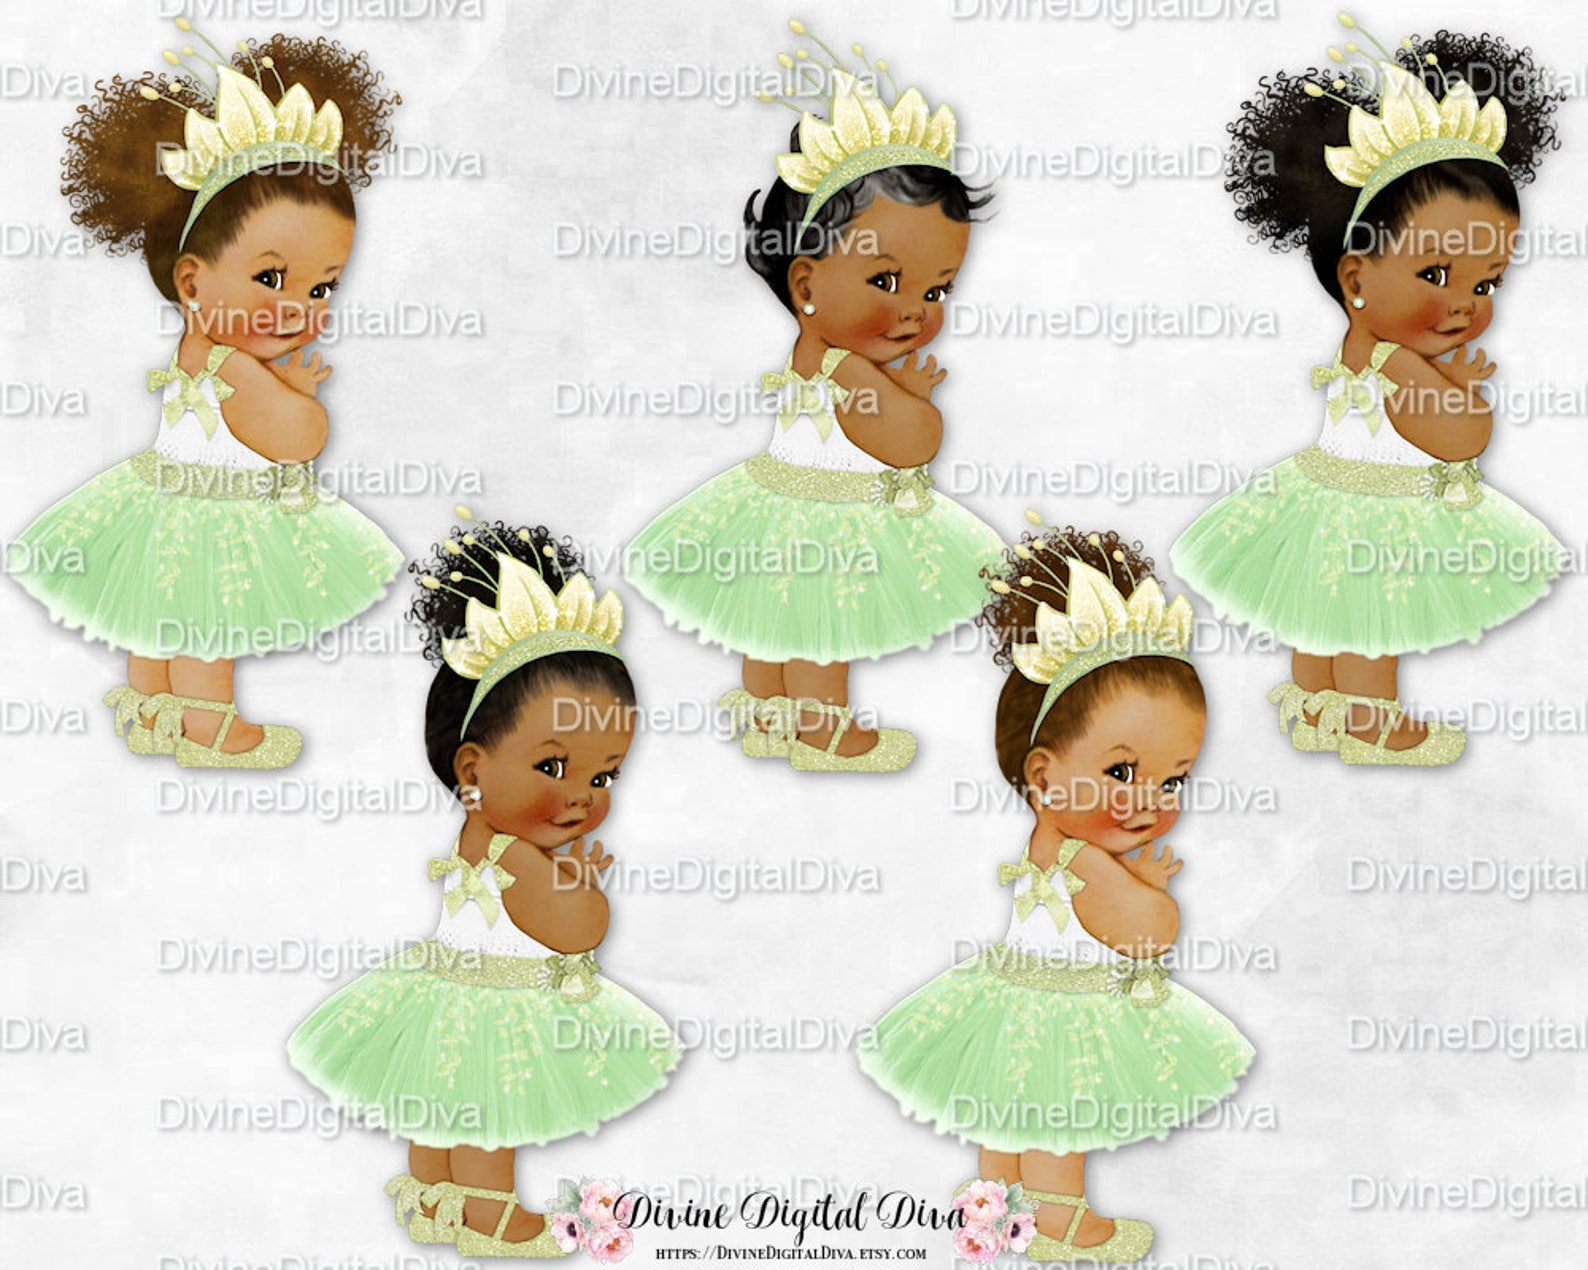 princess green dress leaf tiara ballet shoe | vintage baby girl african american skin tones afro puffs | clipart instant downloa